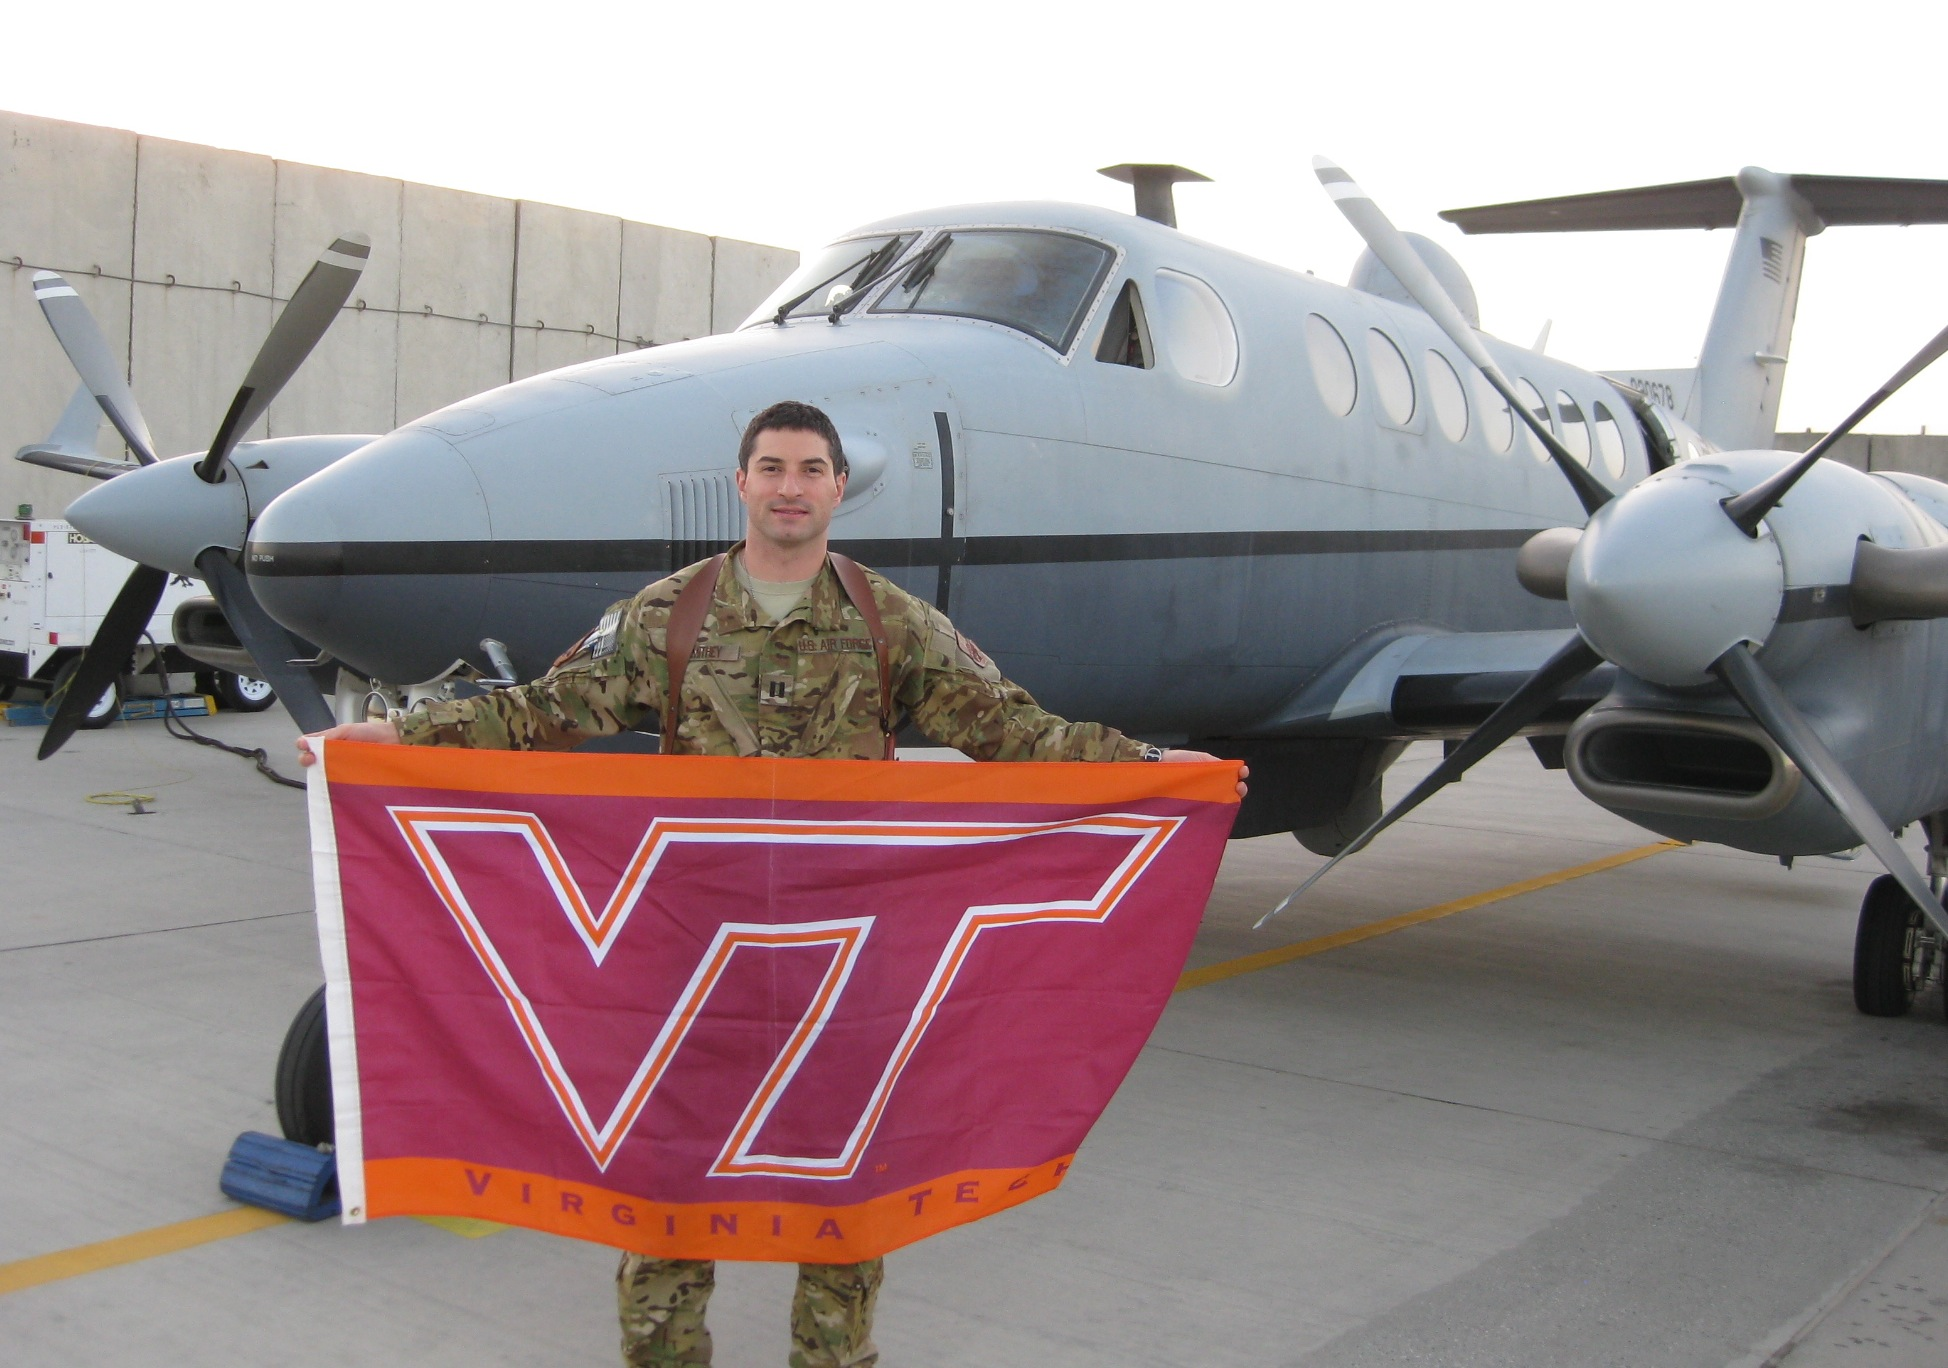 Capt. Andrew Smithey, U.S. Air Force, Virginia Tech Corps of Cadets Class of 2007 in front of his aircraft